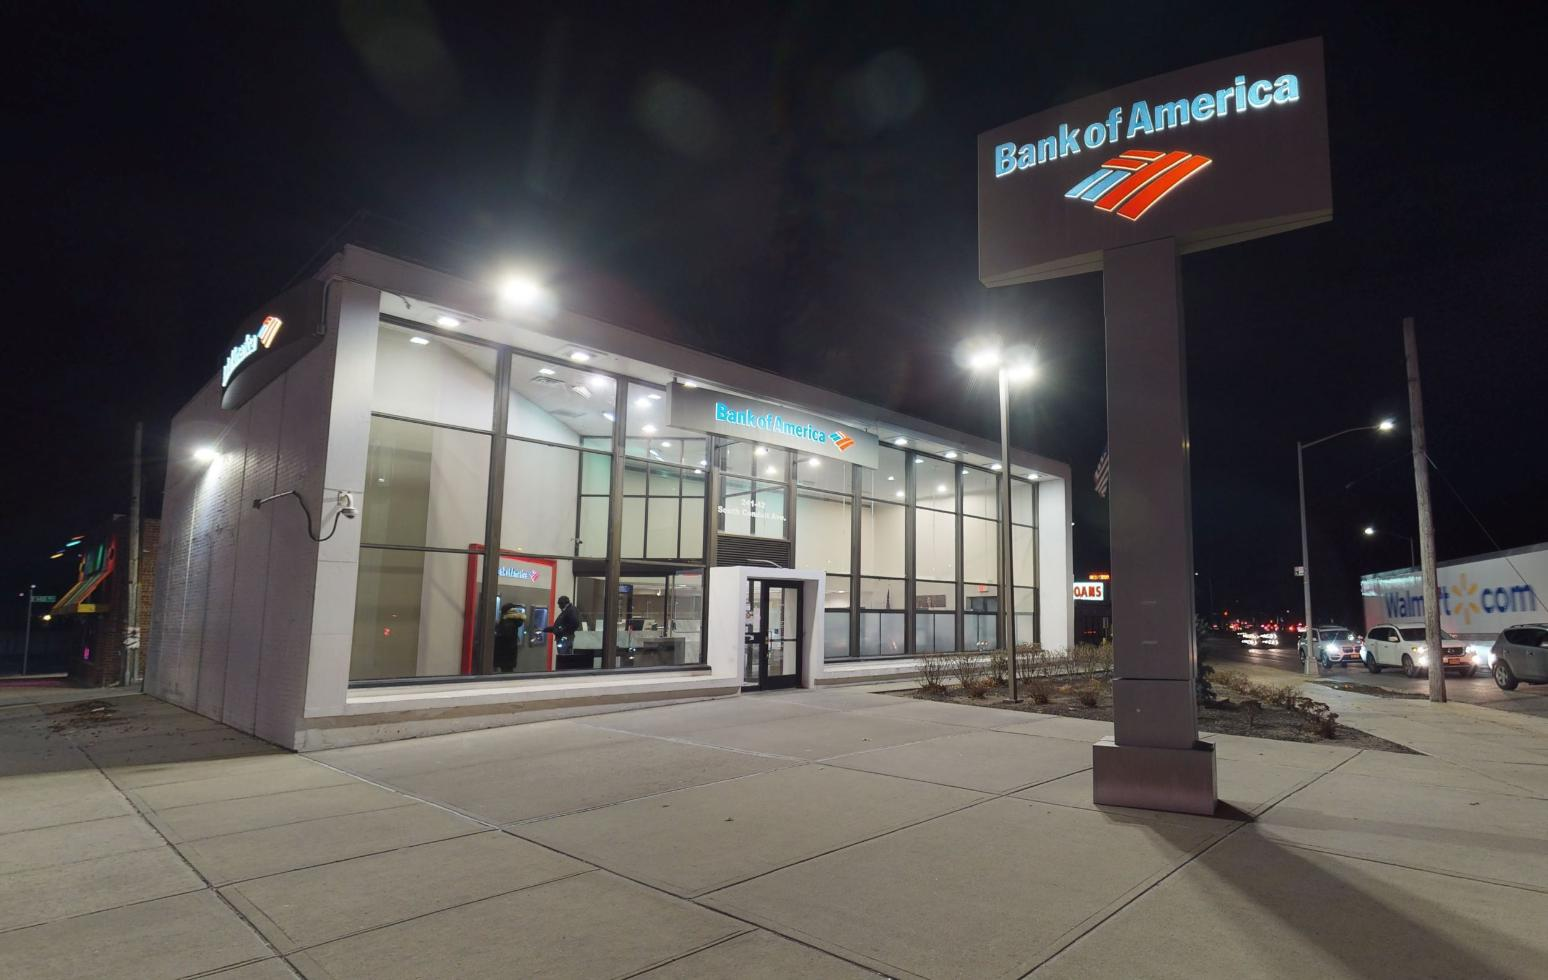 Bank of America financial center with walk-up ATM | 24142 S Conduit Ave, Rosedale, NY 11422